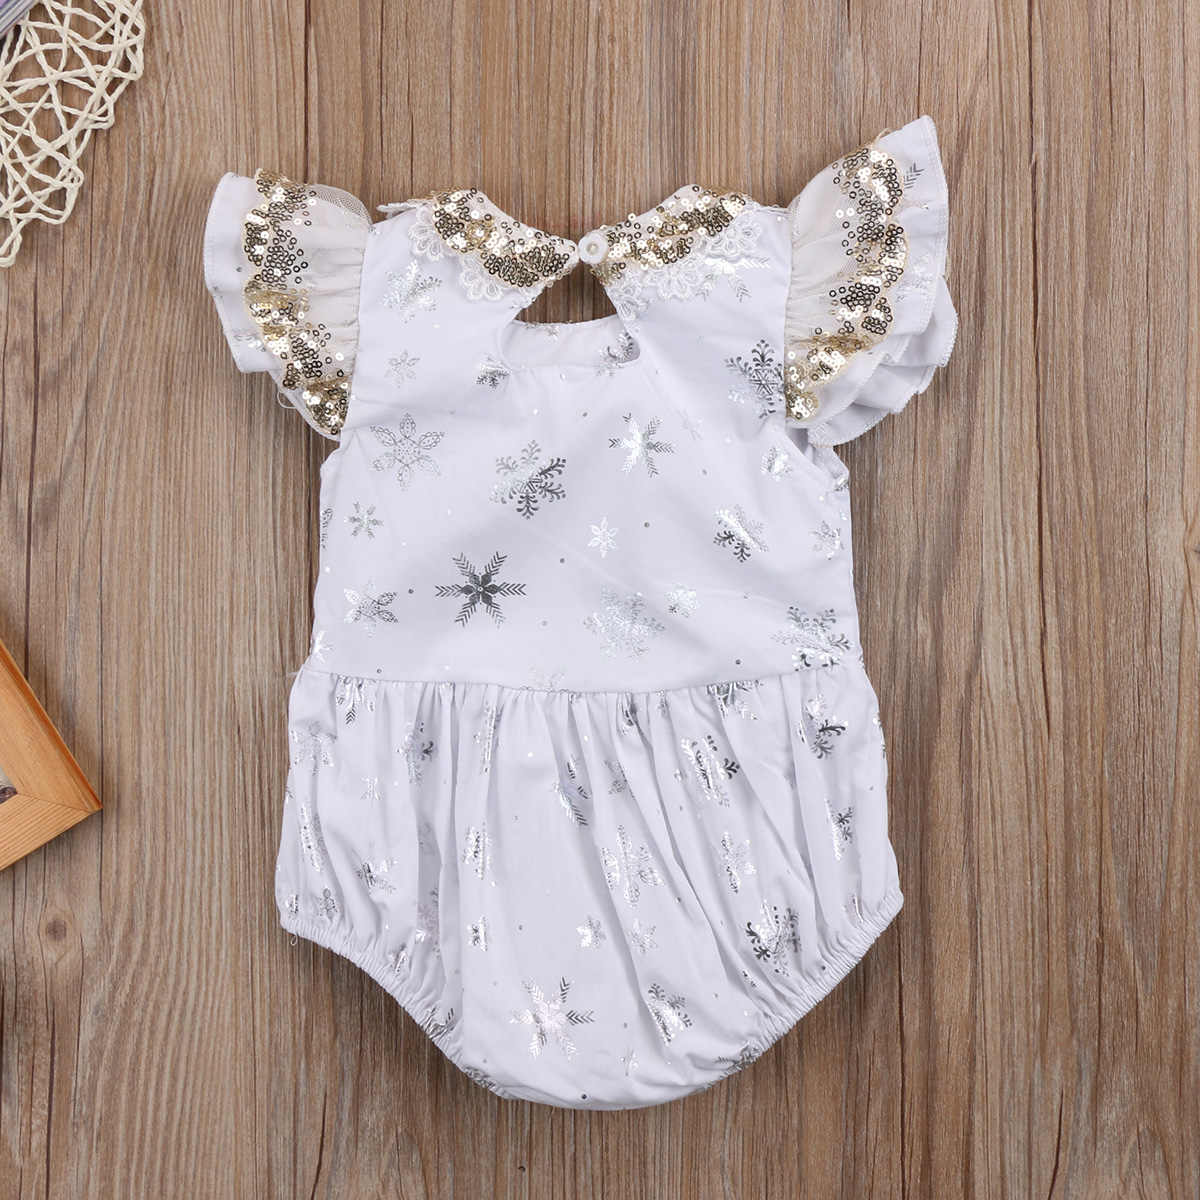 030da4505 Detail Feedback Questions about Christmas baby girls romper Princess ...